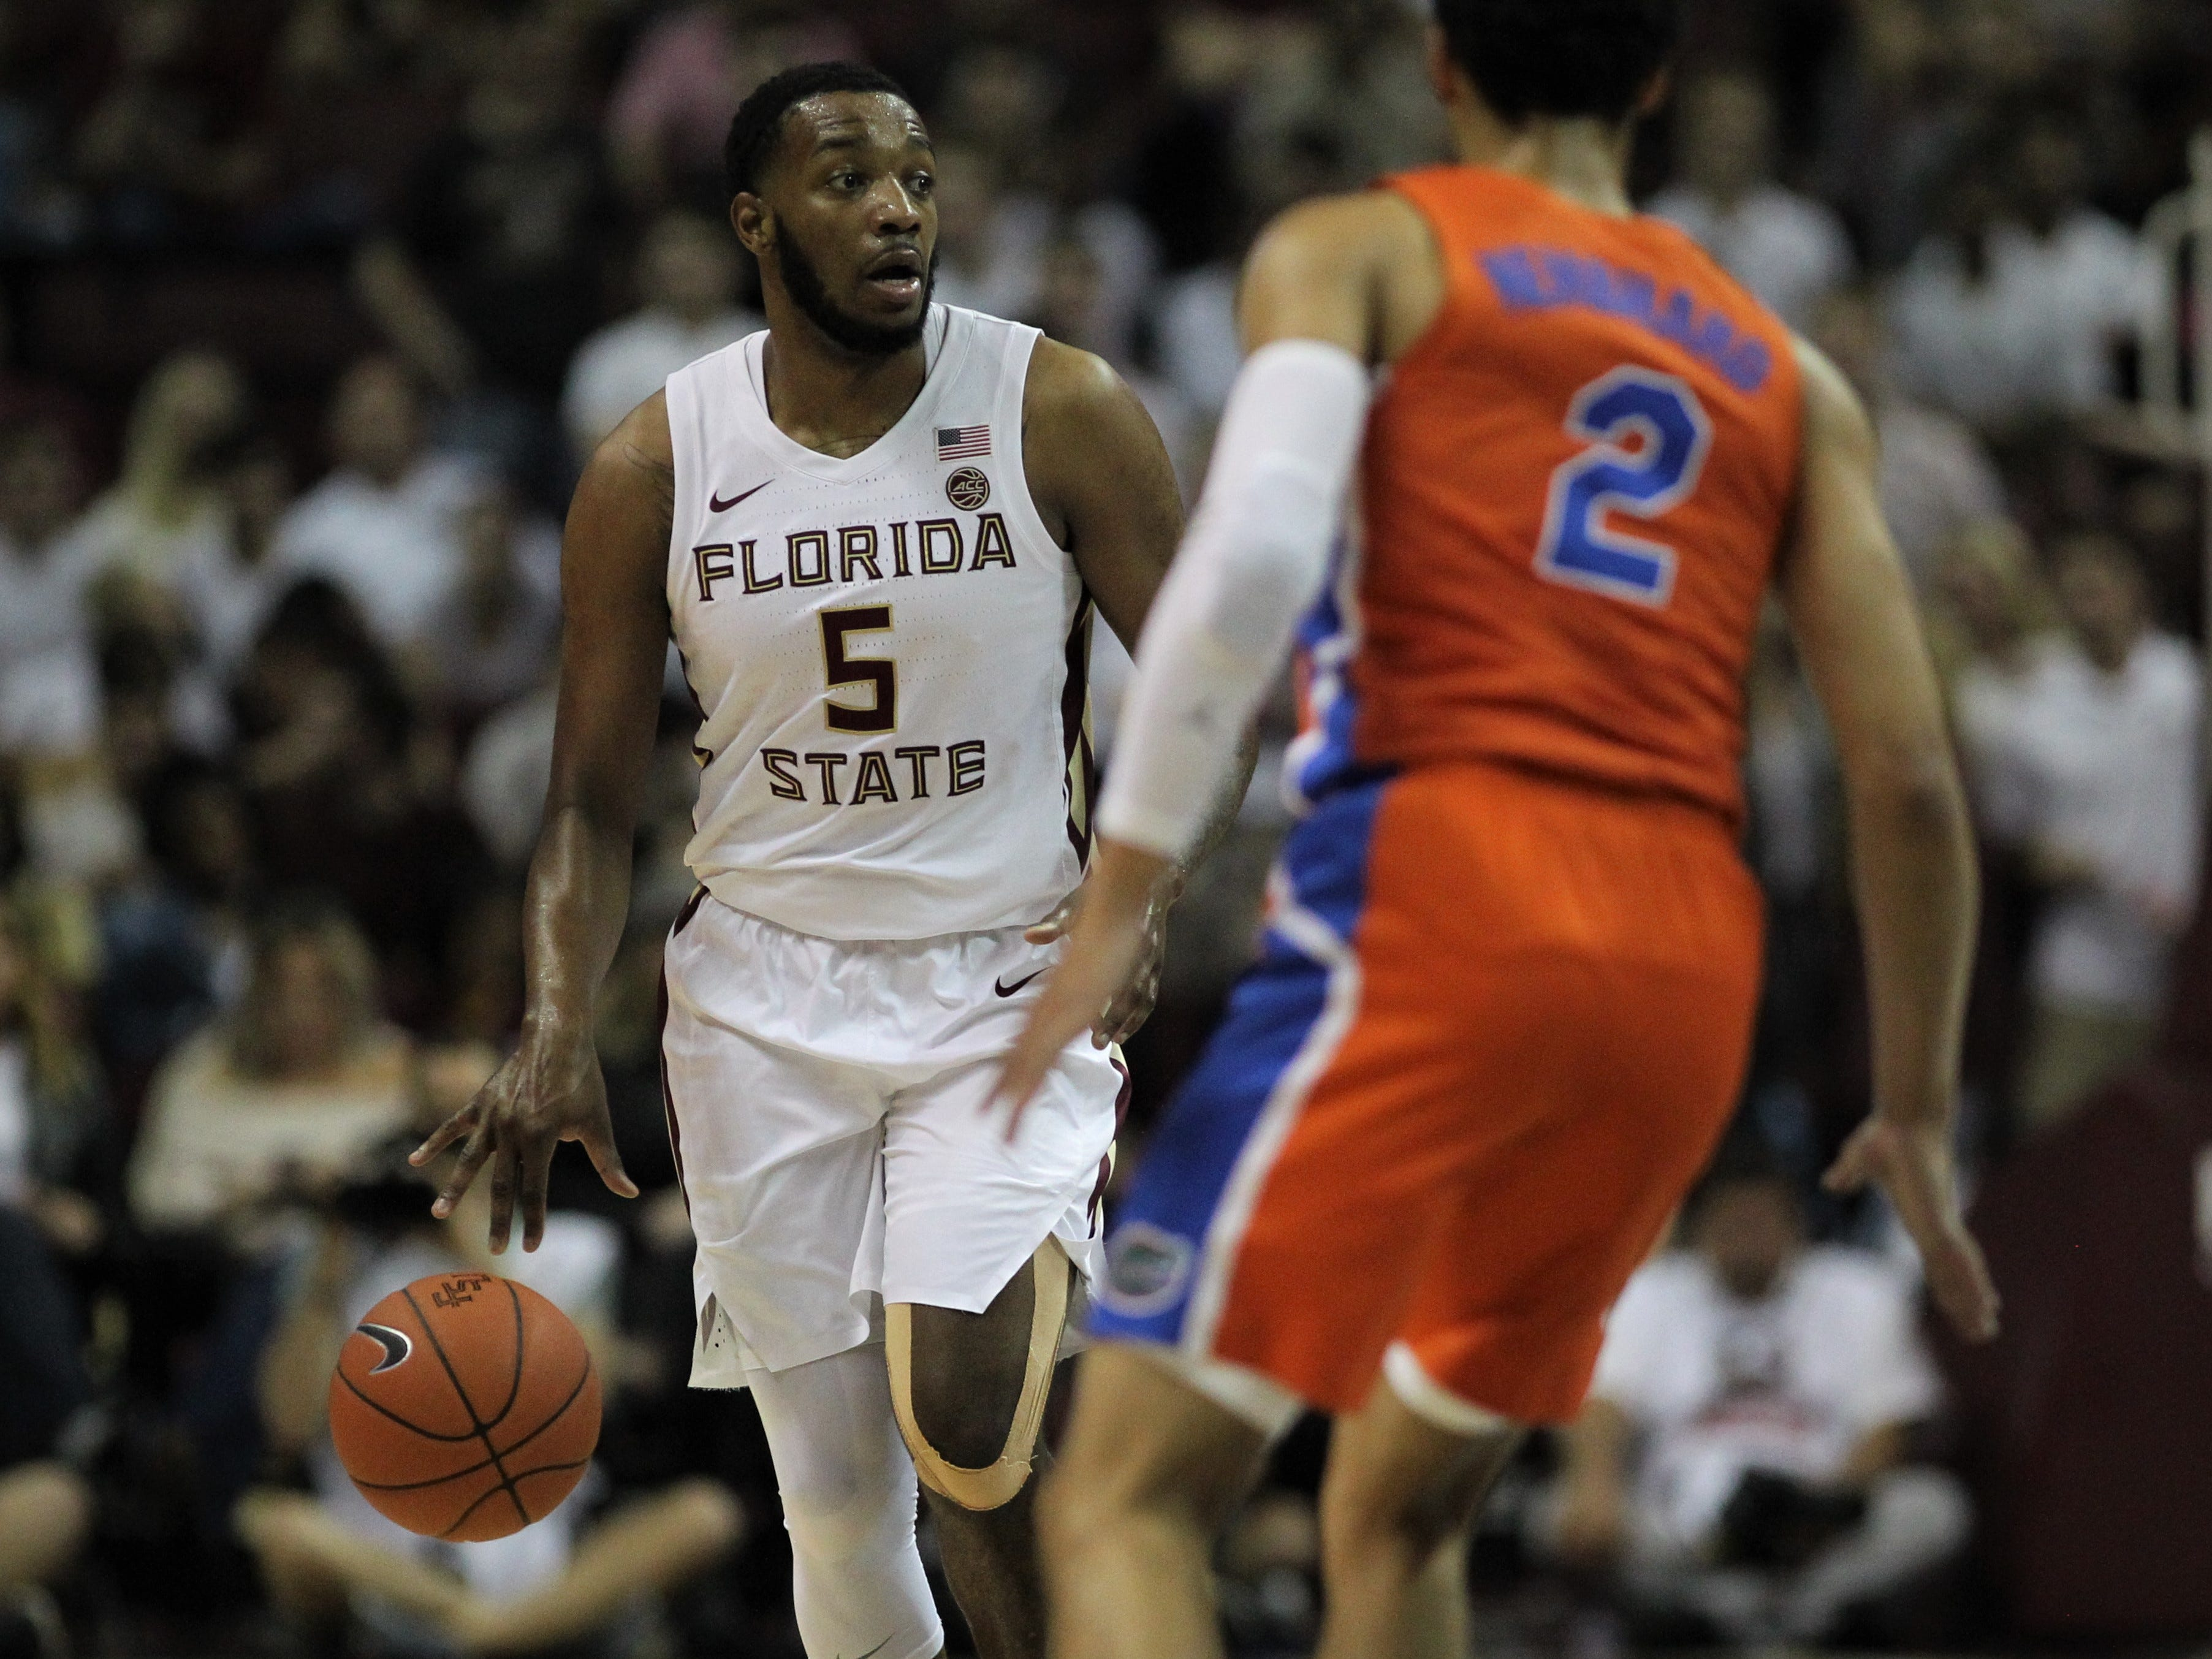 Florida State's P.J. Savoy brings the ball up the court during the Sunshine Showdown game against Florida on Tuesday at the Tucker Civic Center.